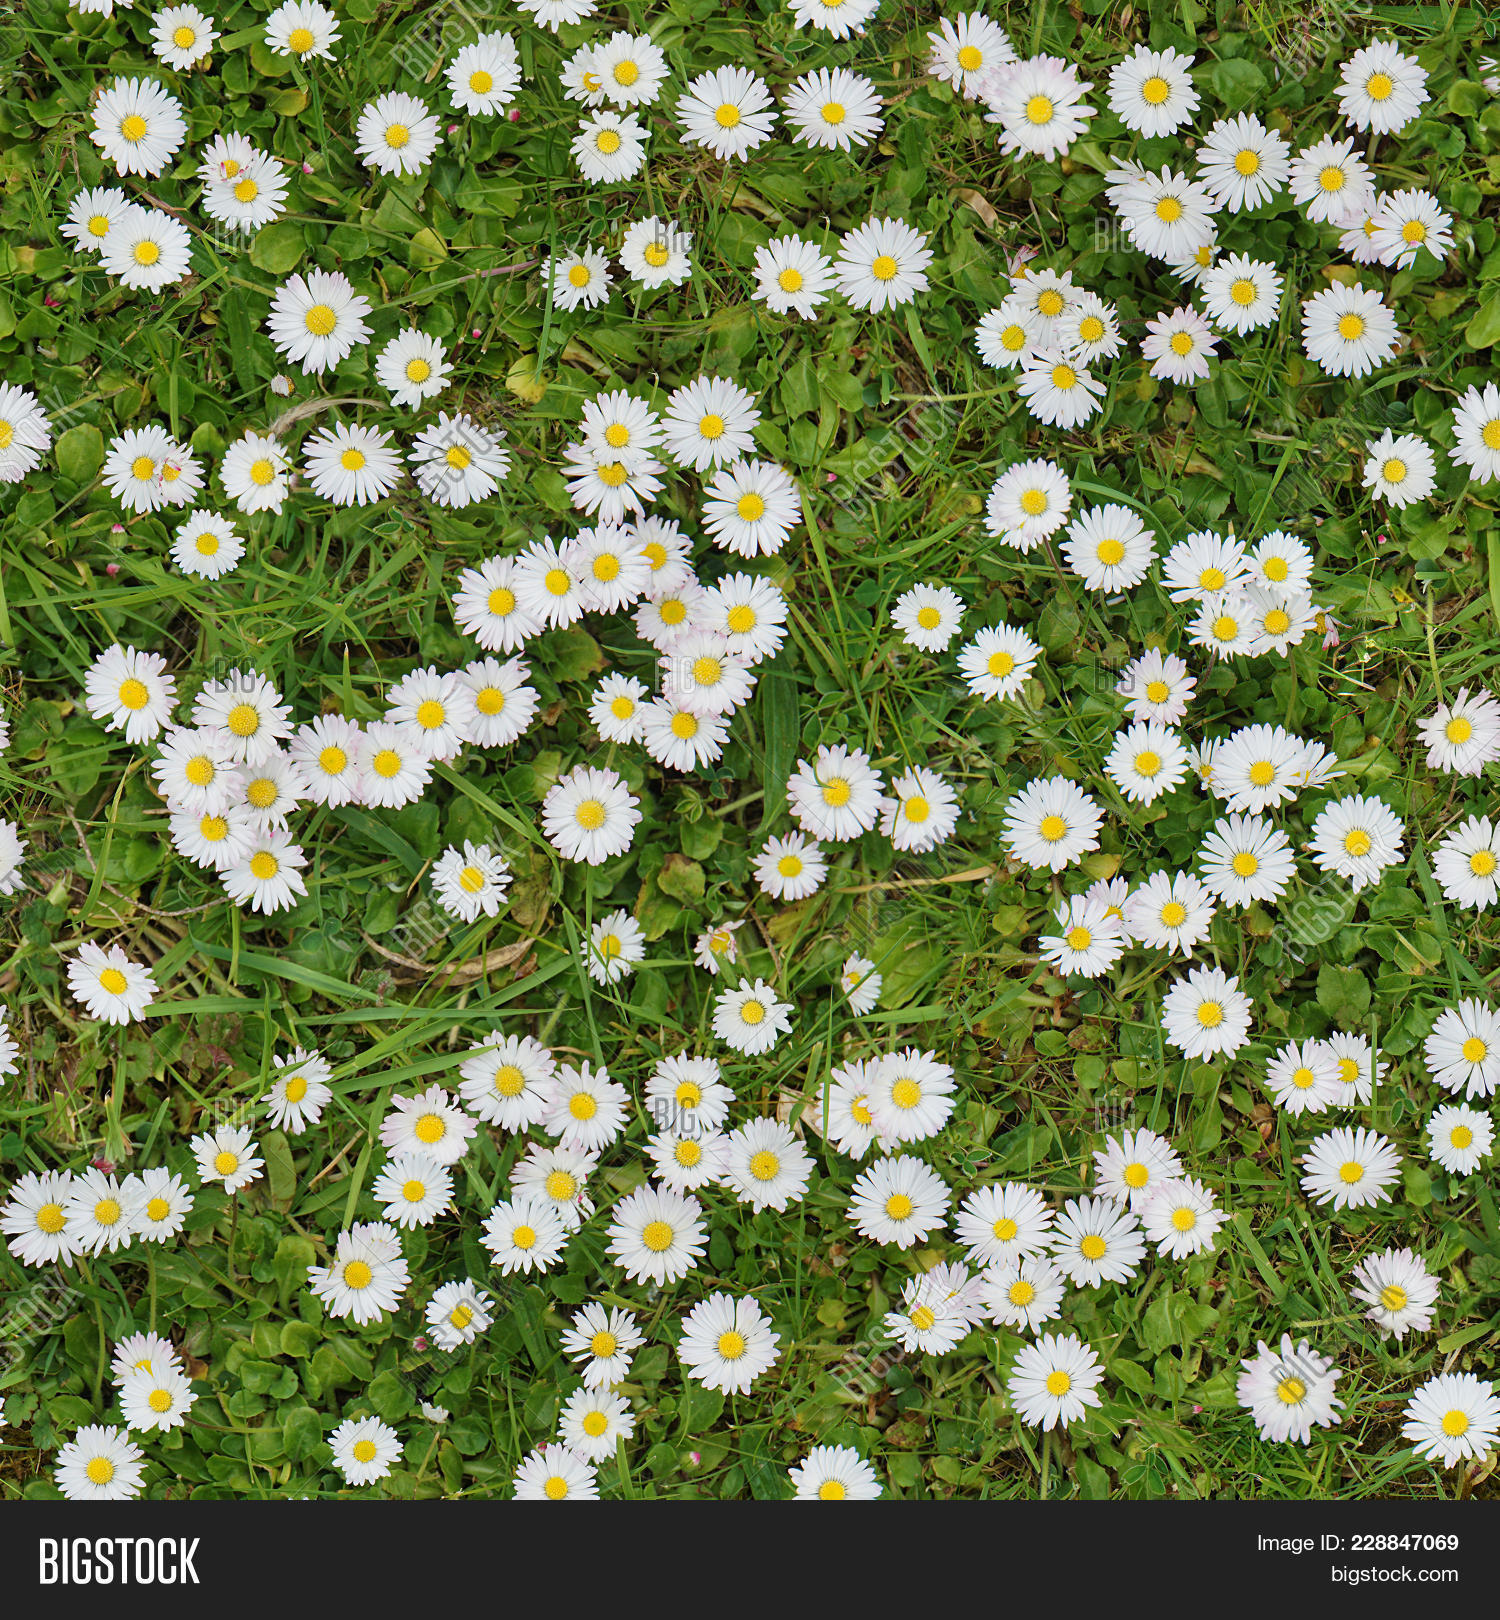 White Flowers On Lawn Image Photo Free Trial Bigstock